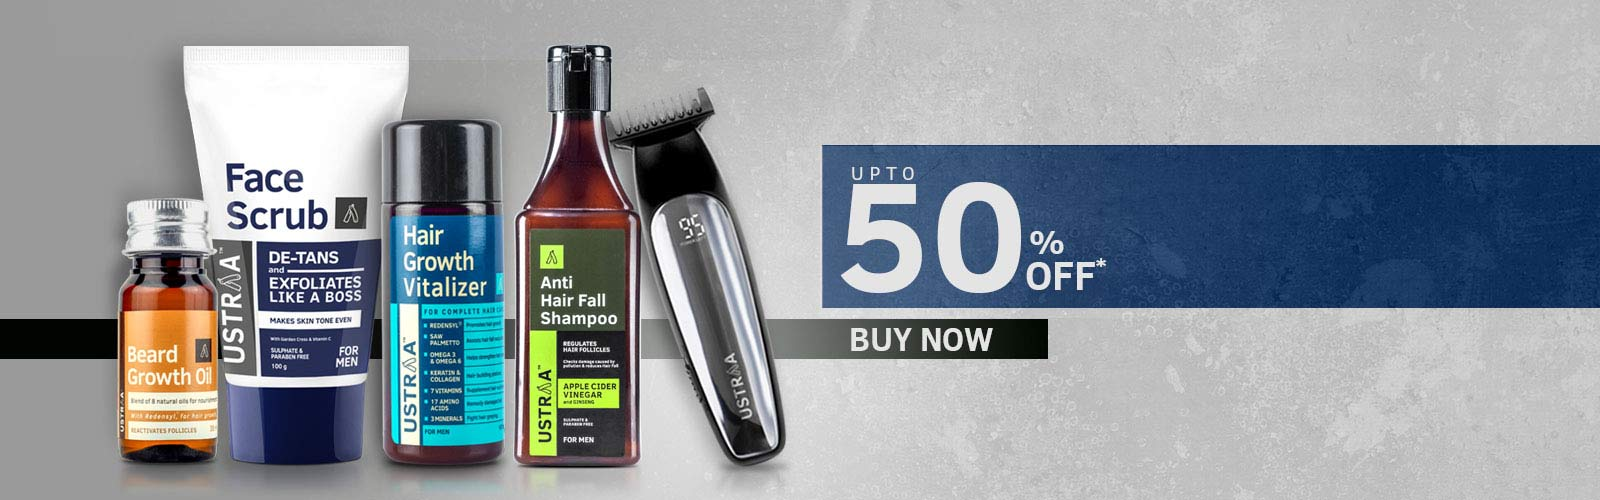 Multiple product upto 50% off